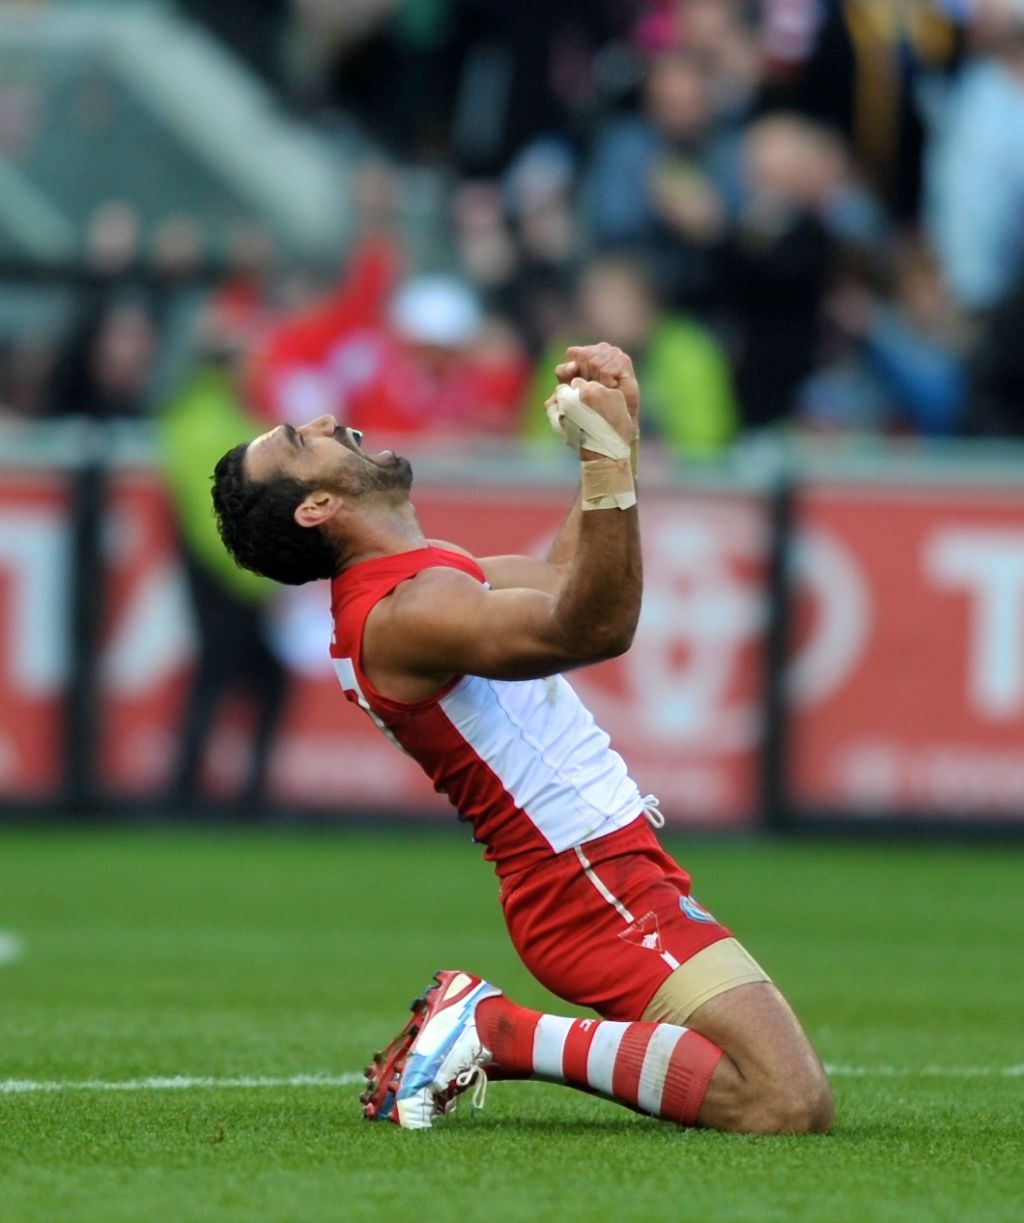 AFL Grand Final 2012 at the MCG Sydney captain Adam Goodes at the end of the game. 29th September 2012, The Age Sport, Picture by Wayne Taylor